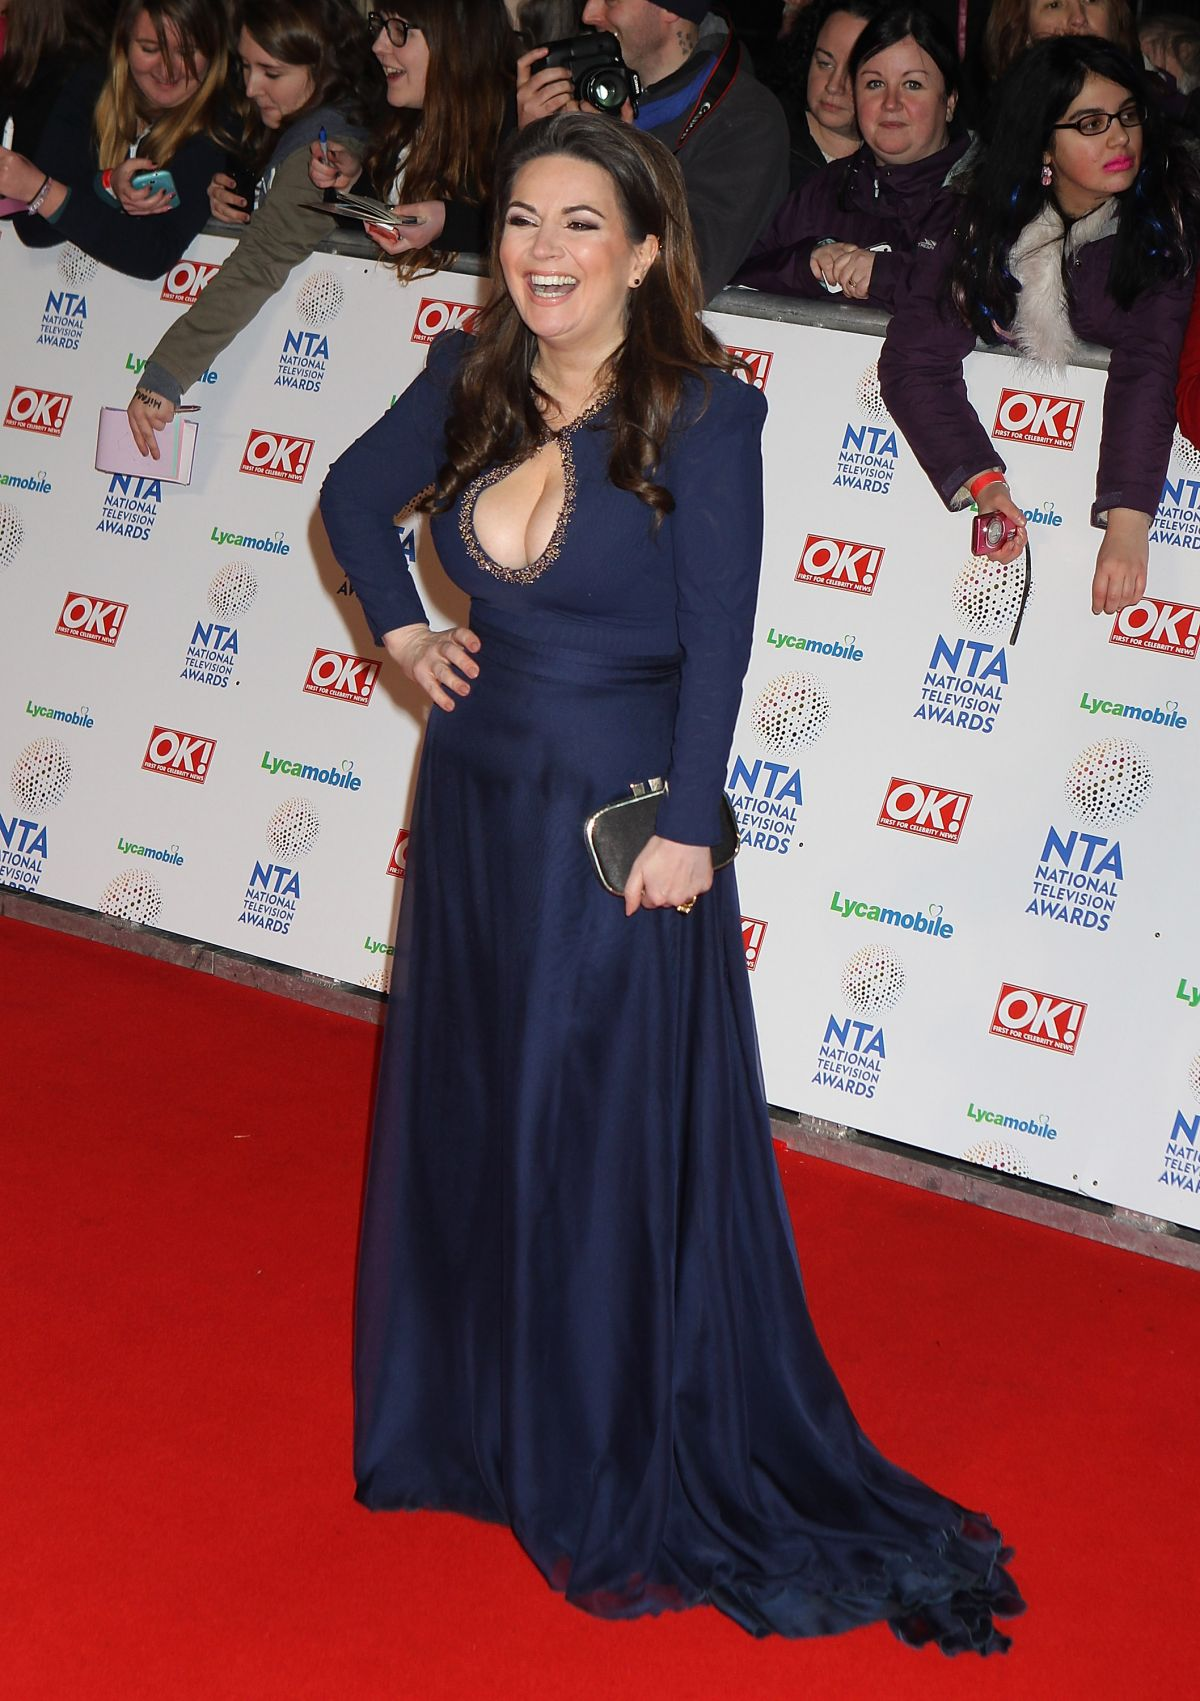 DEBBIE RUSH at 2014 National Television Awards in London